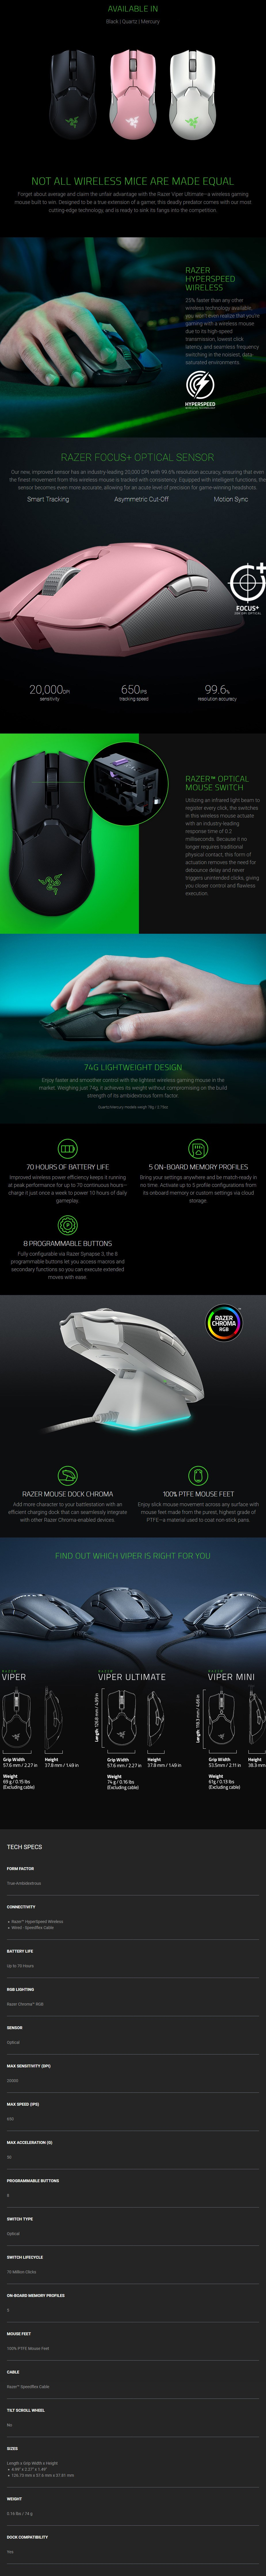 razer_viper_ultimate_wireless_gaming_mouse_with_charging_dock_quartz_ac39605_5.jpg